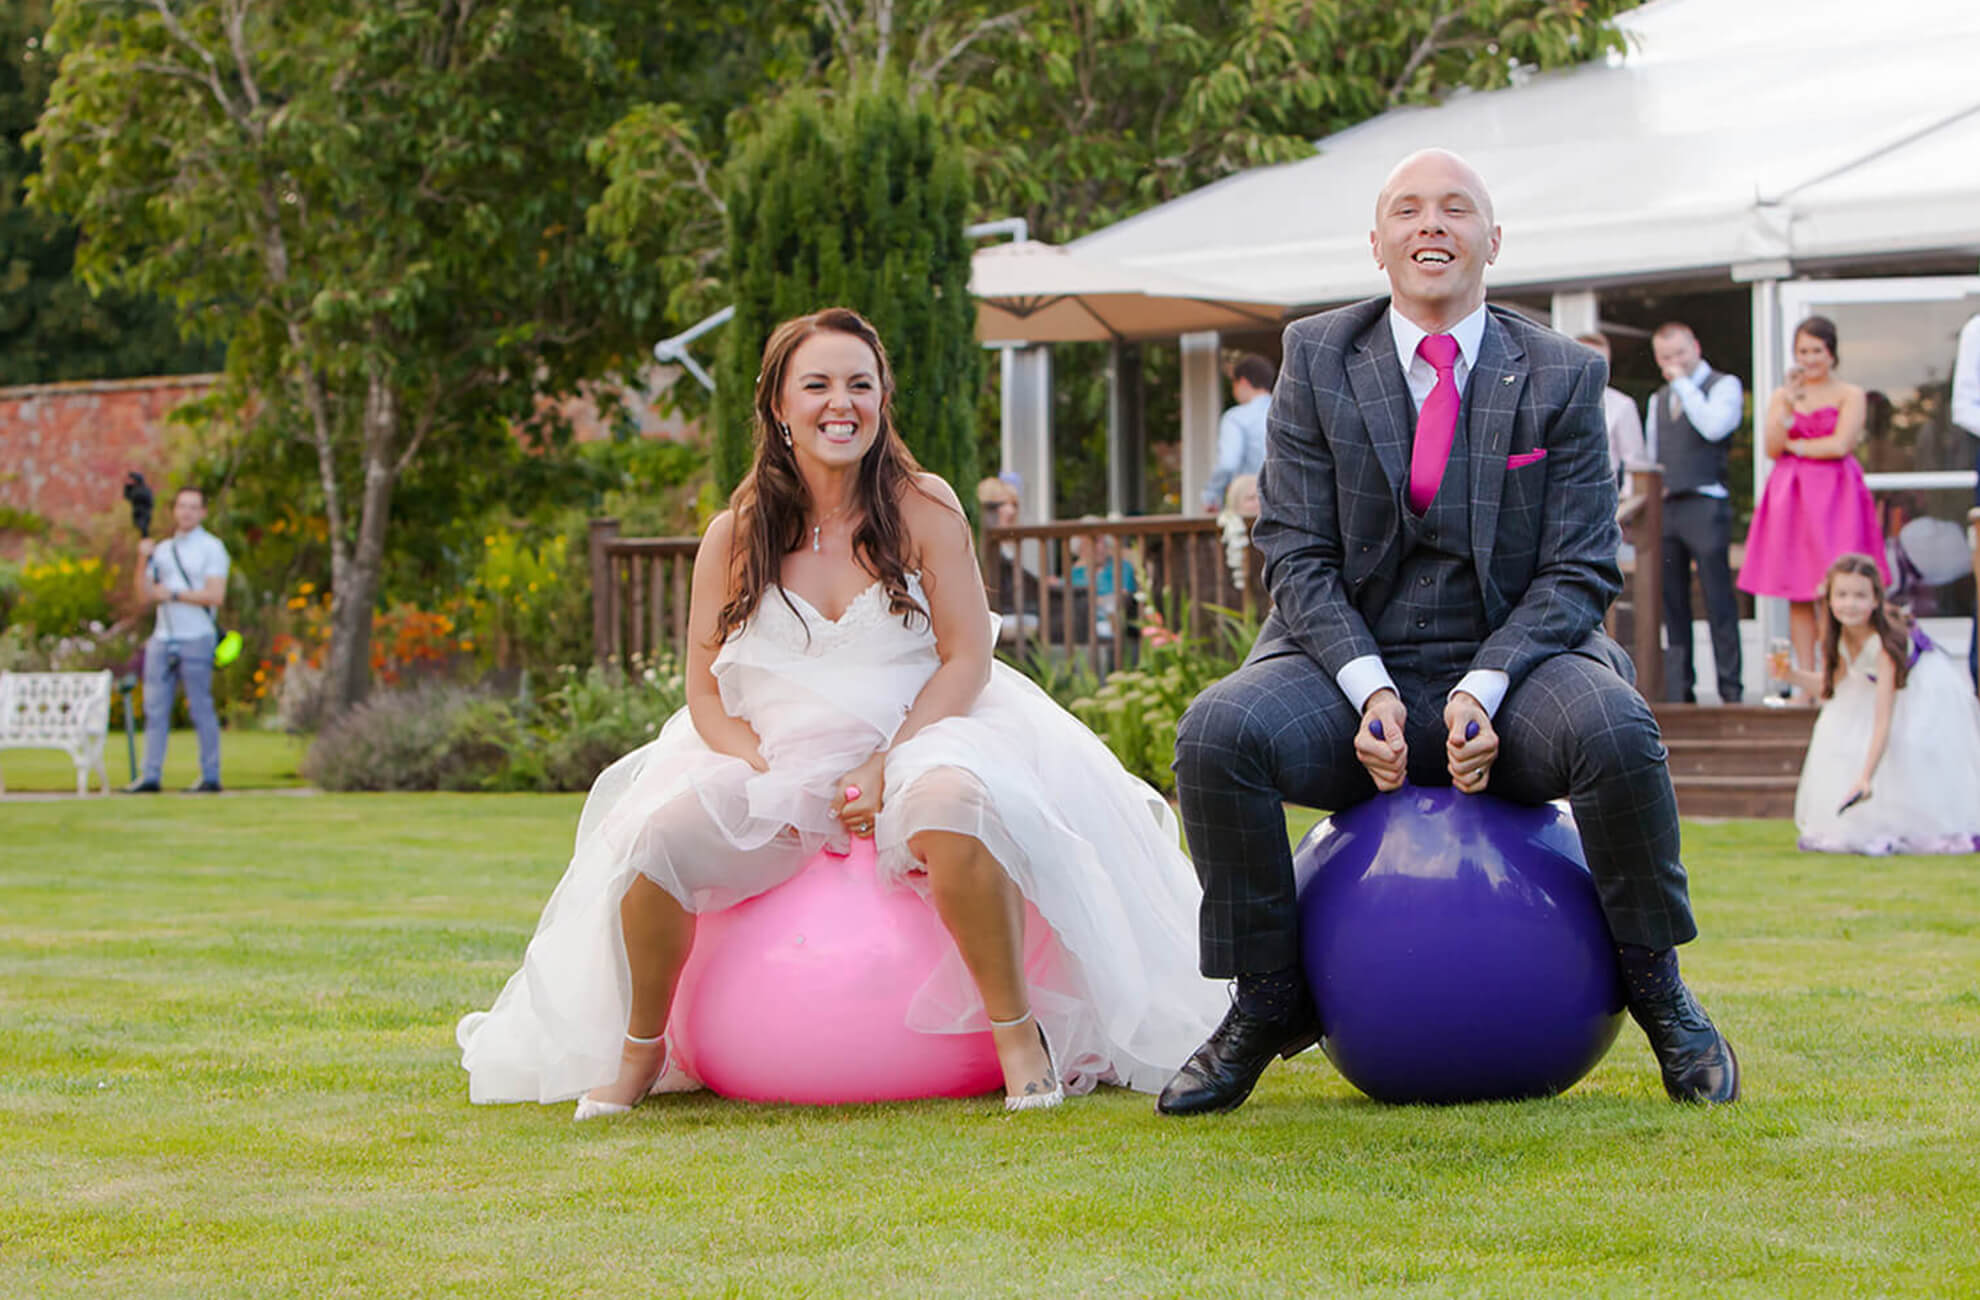 The bride and groom make the most of the gardens at Combermere Abbey on their wedding day by having a space hopper race